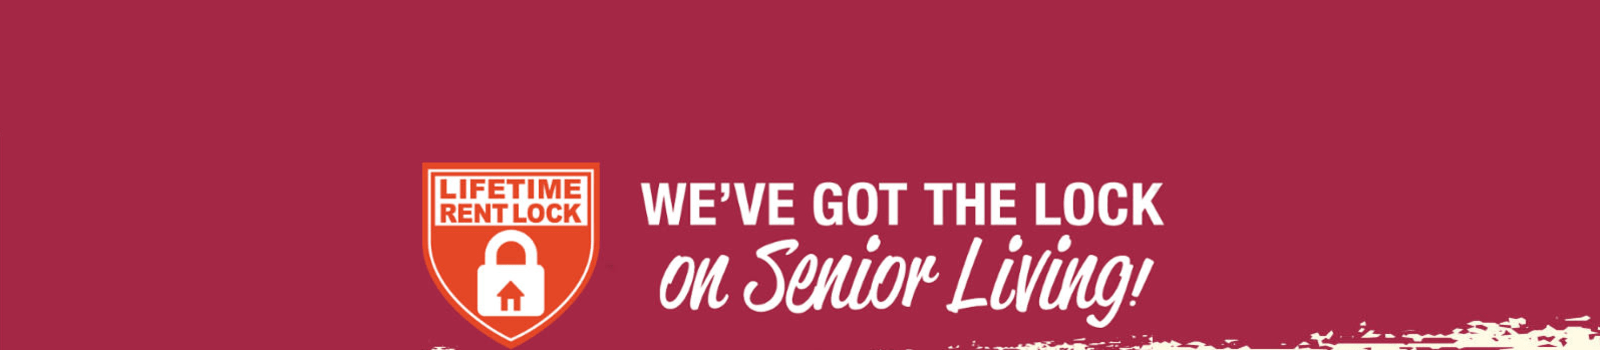 Senior living options at the senior living community in Yardley, Pennsylvania